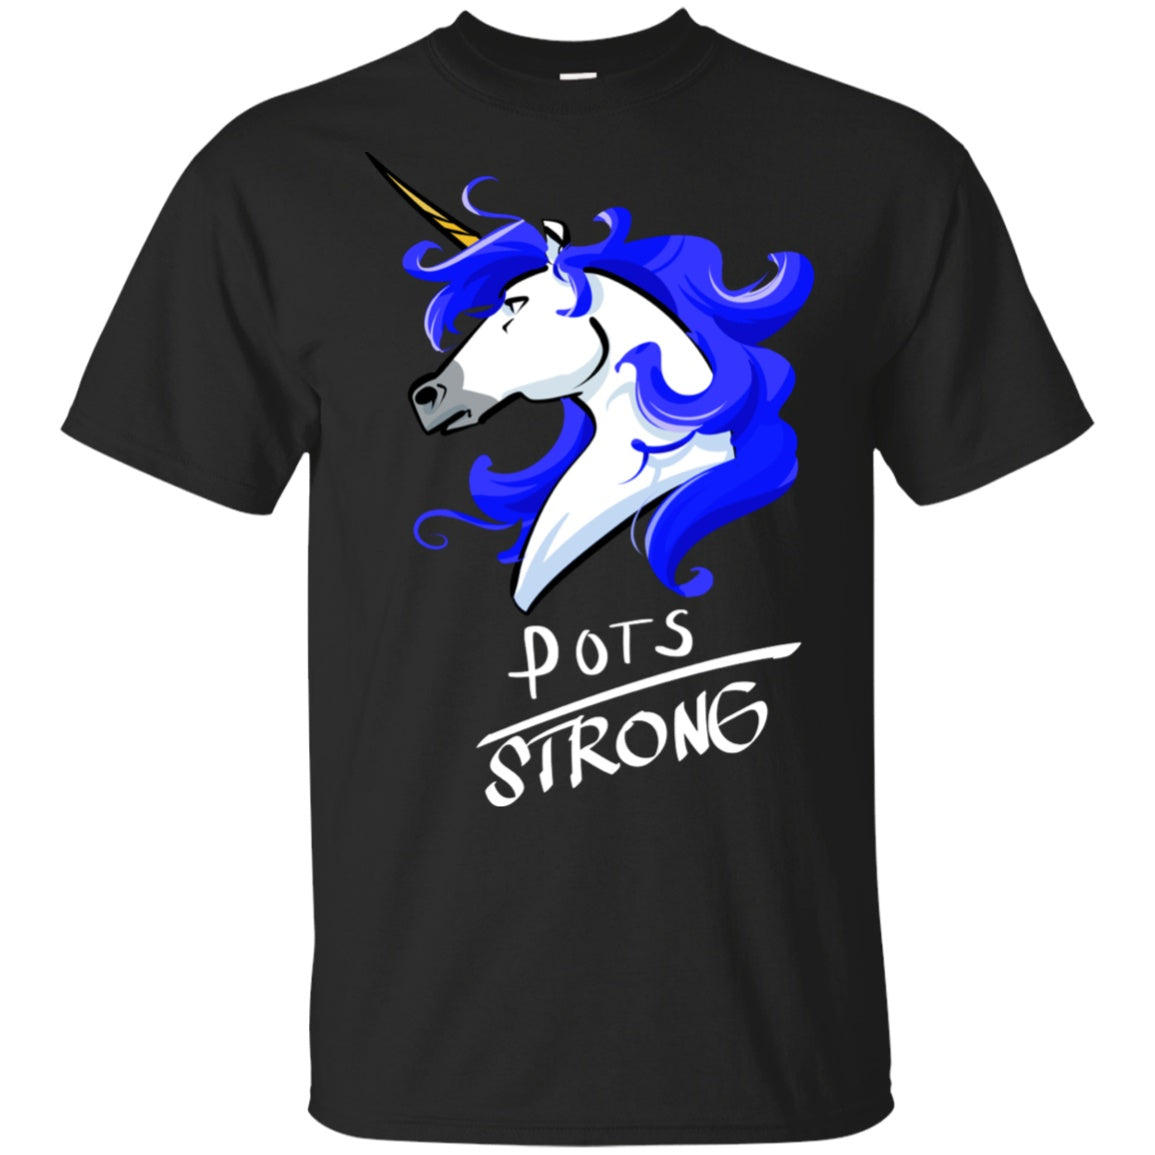 POTS Strong Unicorn Cotton Unisex T-Shirt - The Unchargeables